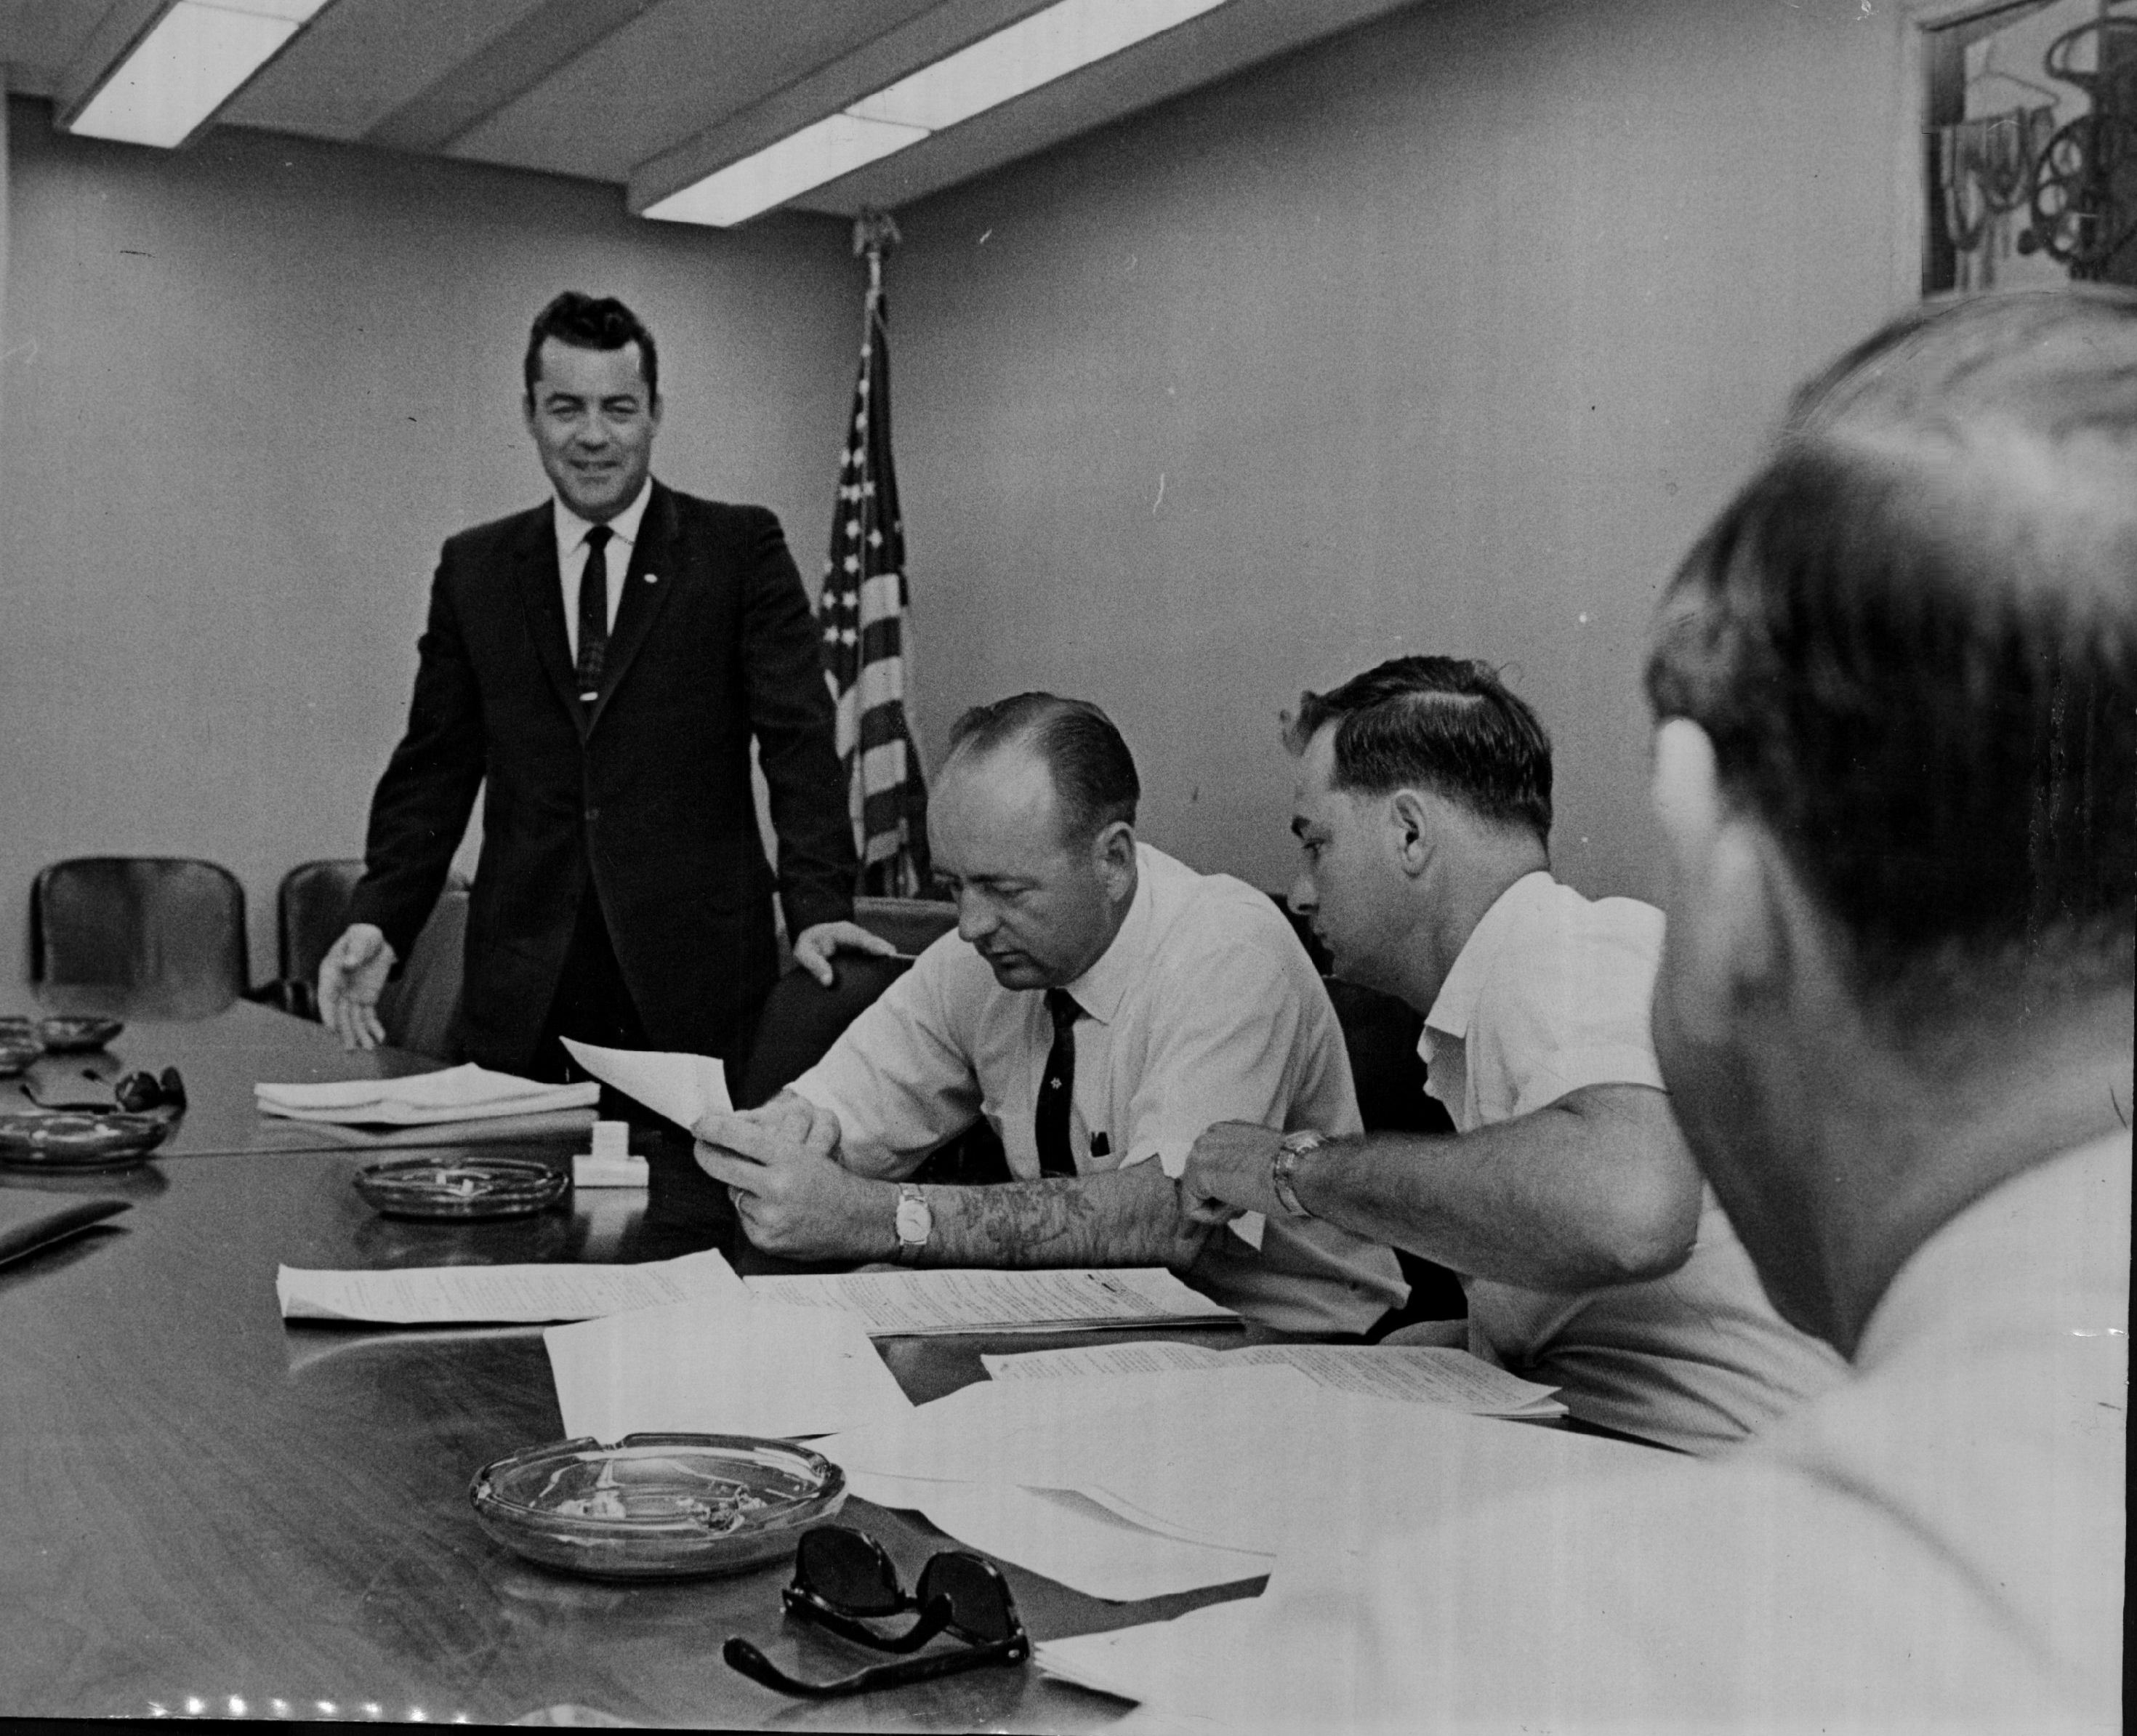 Then-Local 150 business representative Bill Dugan (third from left) is pictured with union leaders in 1966.